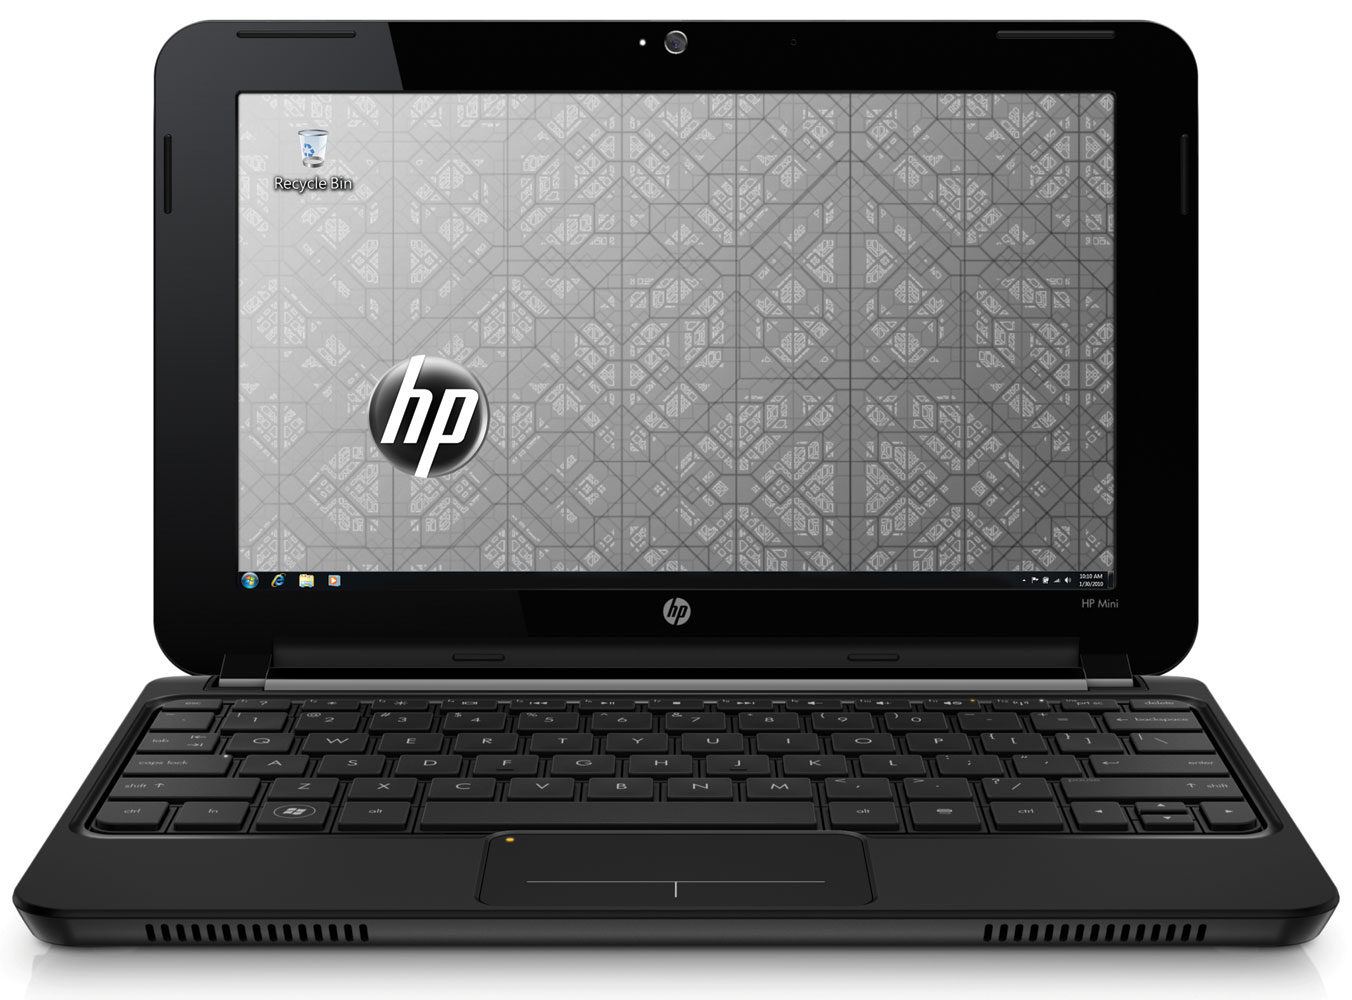 HP Mini 110-1125NR Notebook Quick Launch Buttons Drivers Windows XP